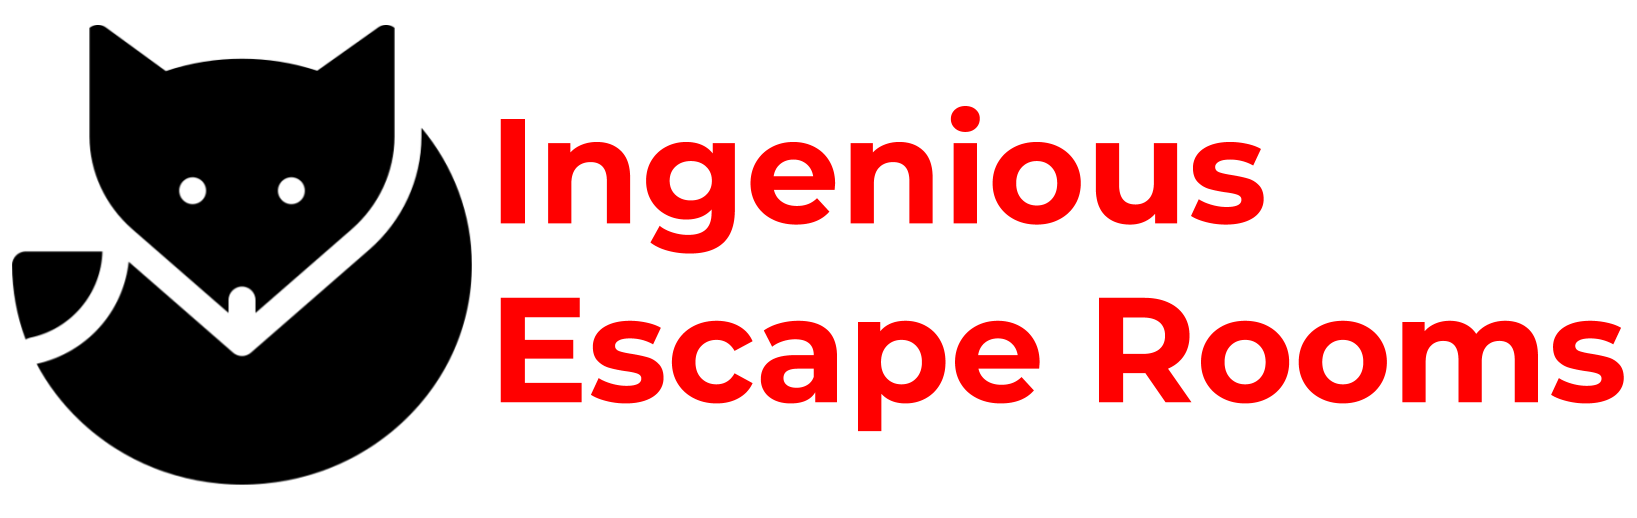 Ingenious Escape Rooms |   Untitled drawing – 2019-12-06T204300.894